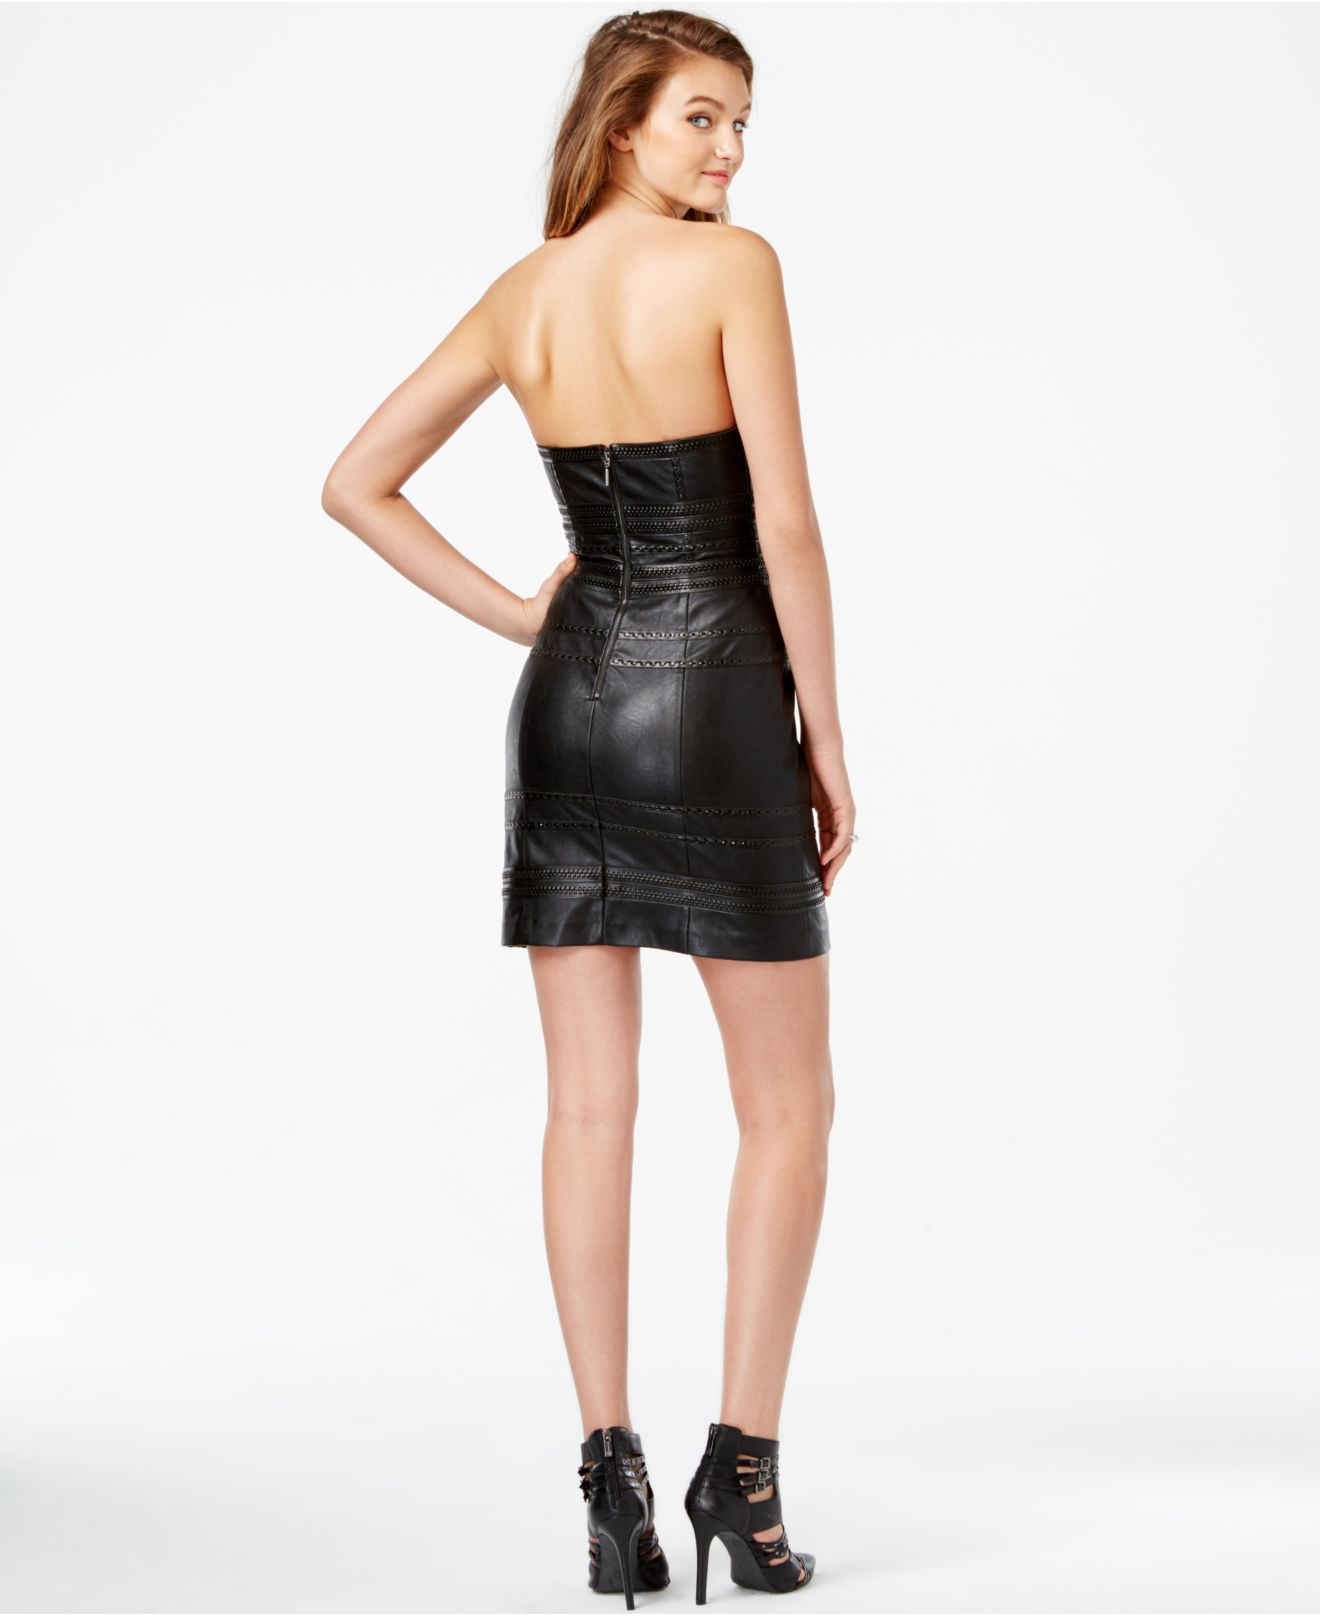 Guess Leather Look Black Dress for Women Faux Leather Women/'s Bodycon